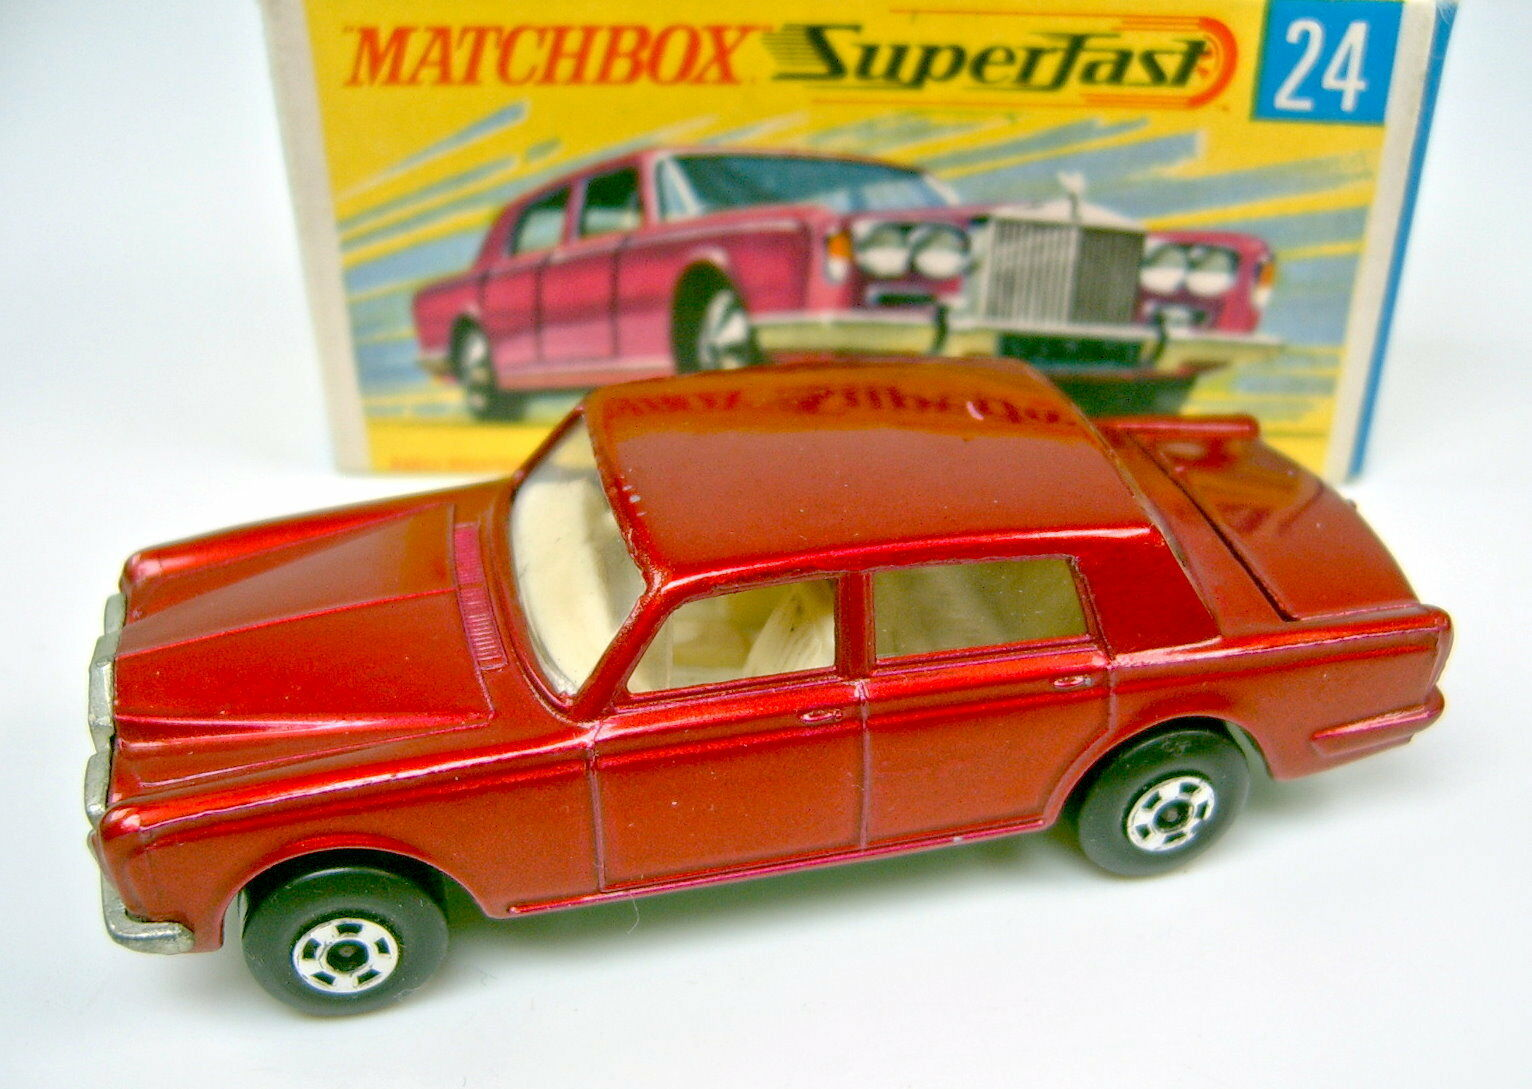 MATCHBOX SF nº 24 a ROLLS ROYCE rougemetallic BPL. est vertmetallic Dans Box